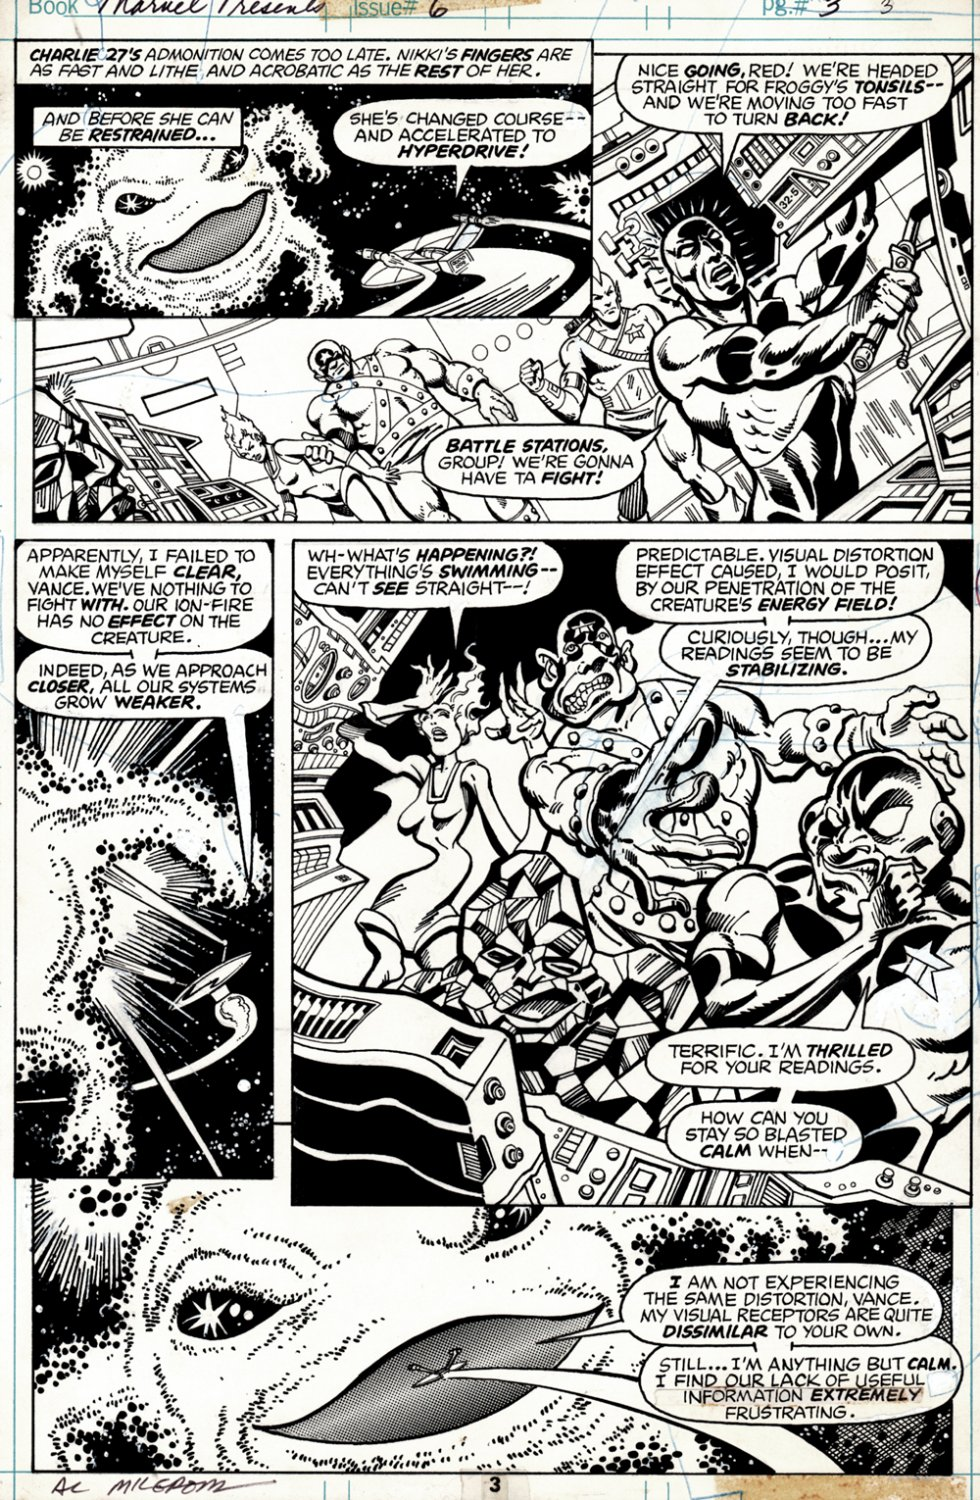 Marvel Presents #6 p 3 (SOLD LIVE ON 'DUELING DEALERS OF COMIC ART' EPISODE #34 PODCAST ON 9-1-2021(RE-WATCH THIS FUNNY ART SELLING SHOW HERE)